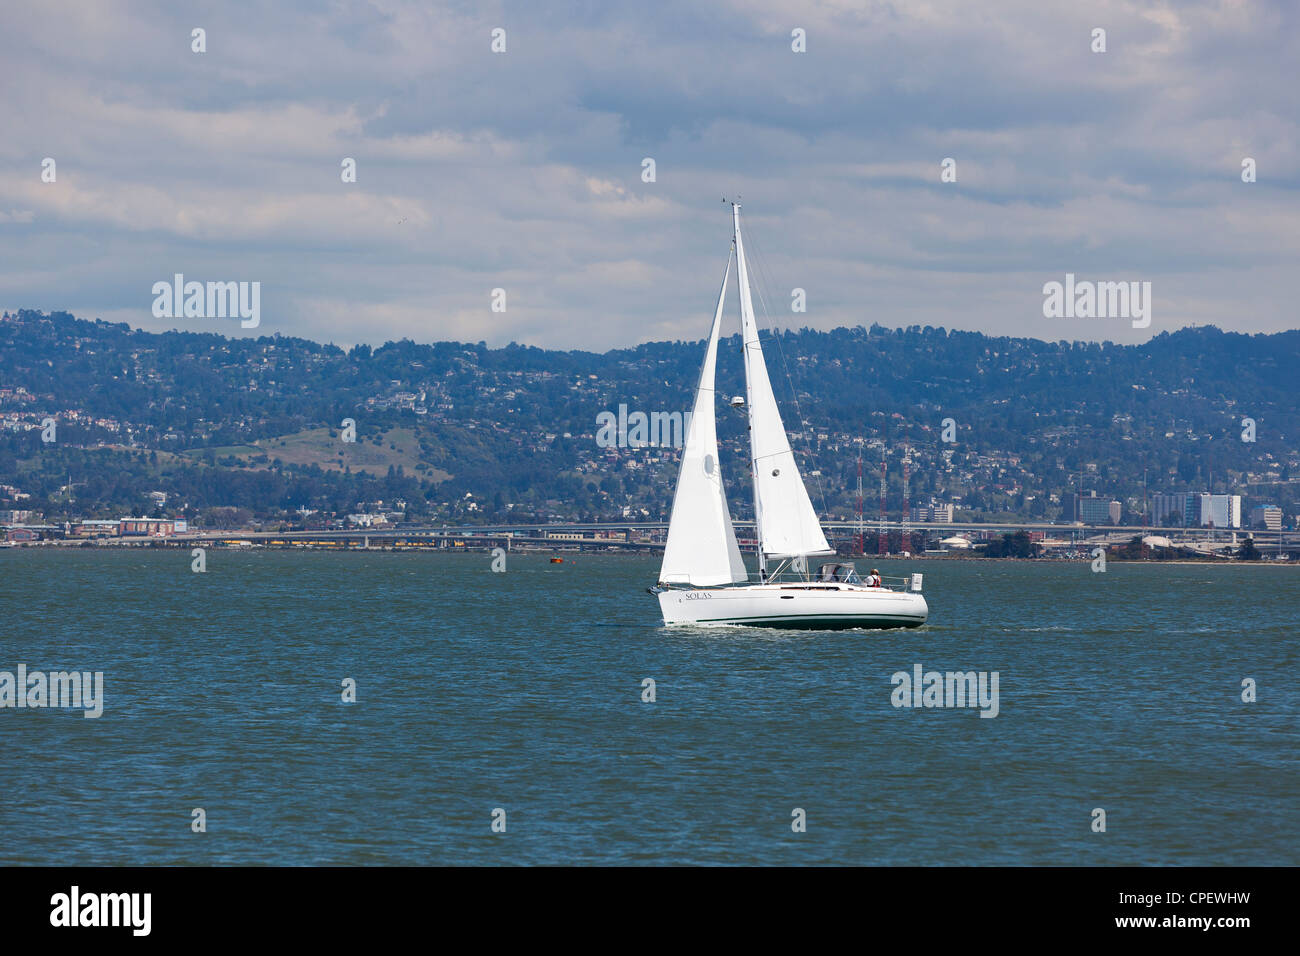 Sailboat in San Francisco bay - Stock Image